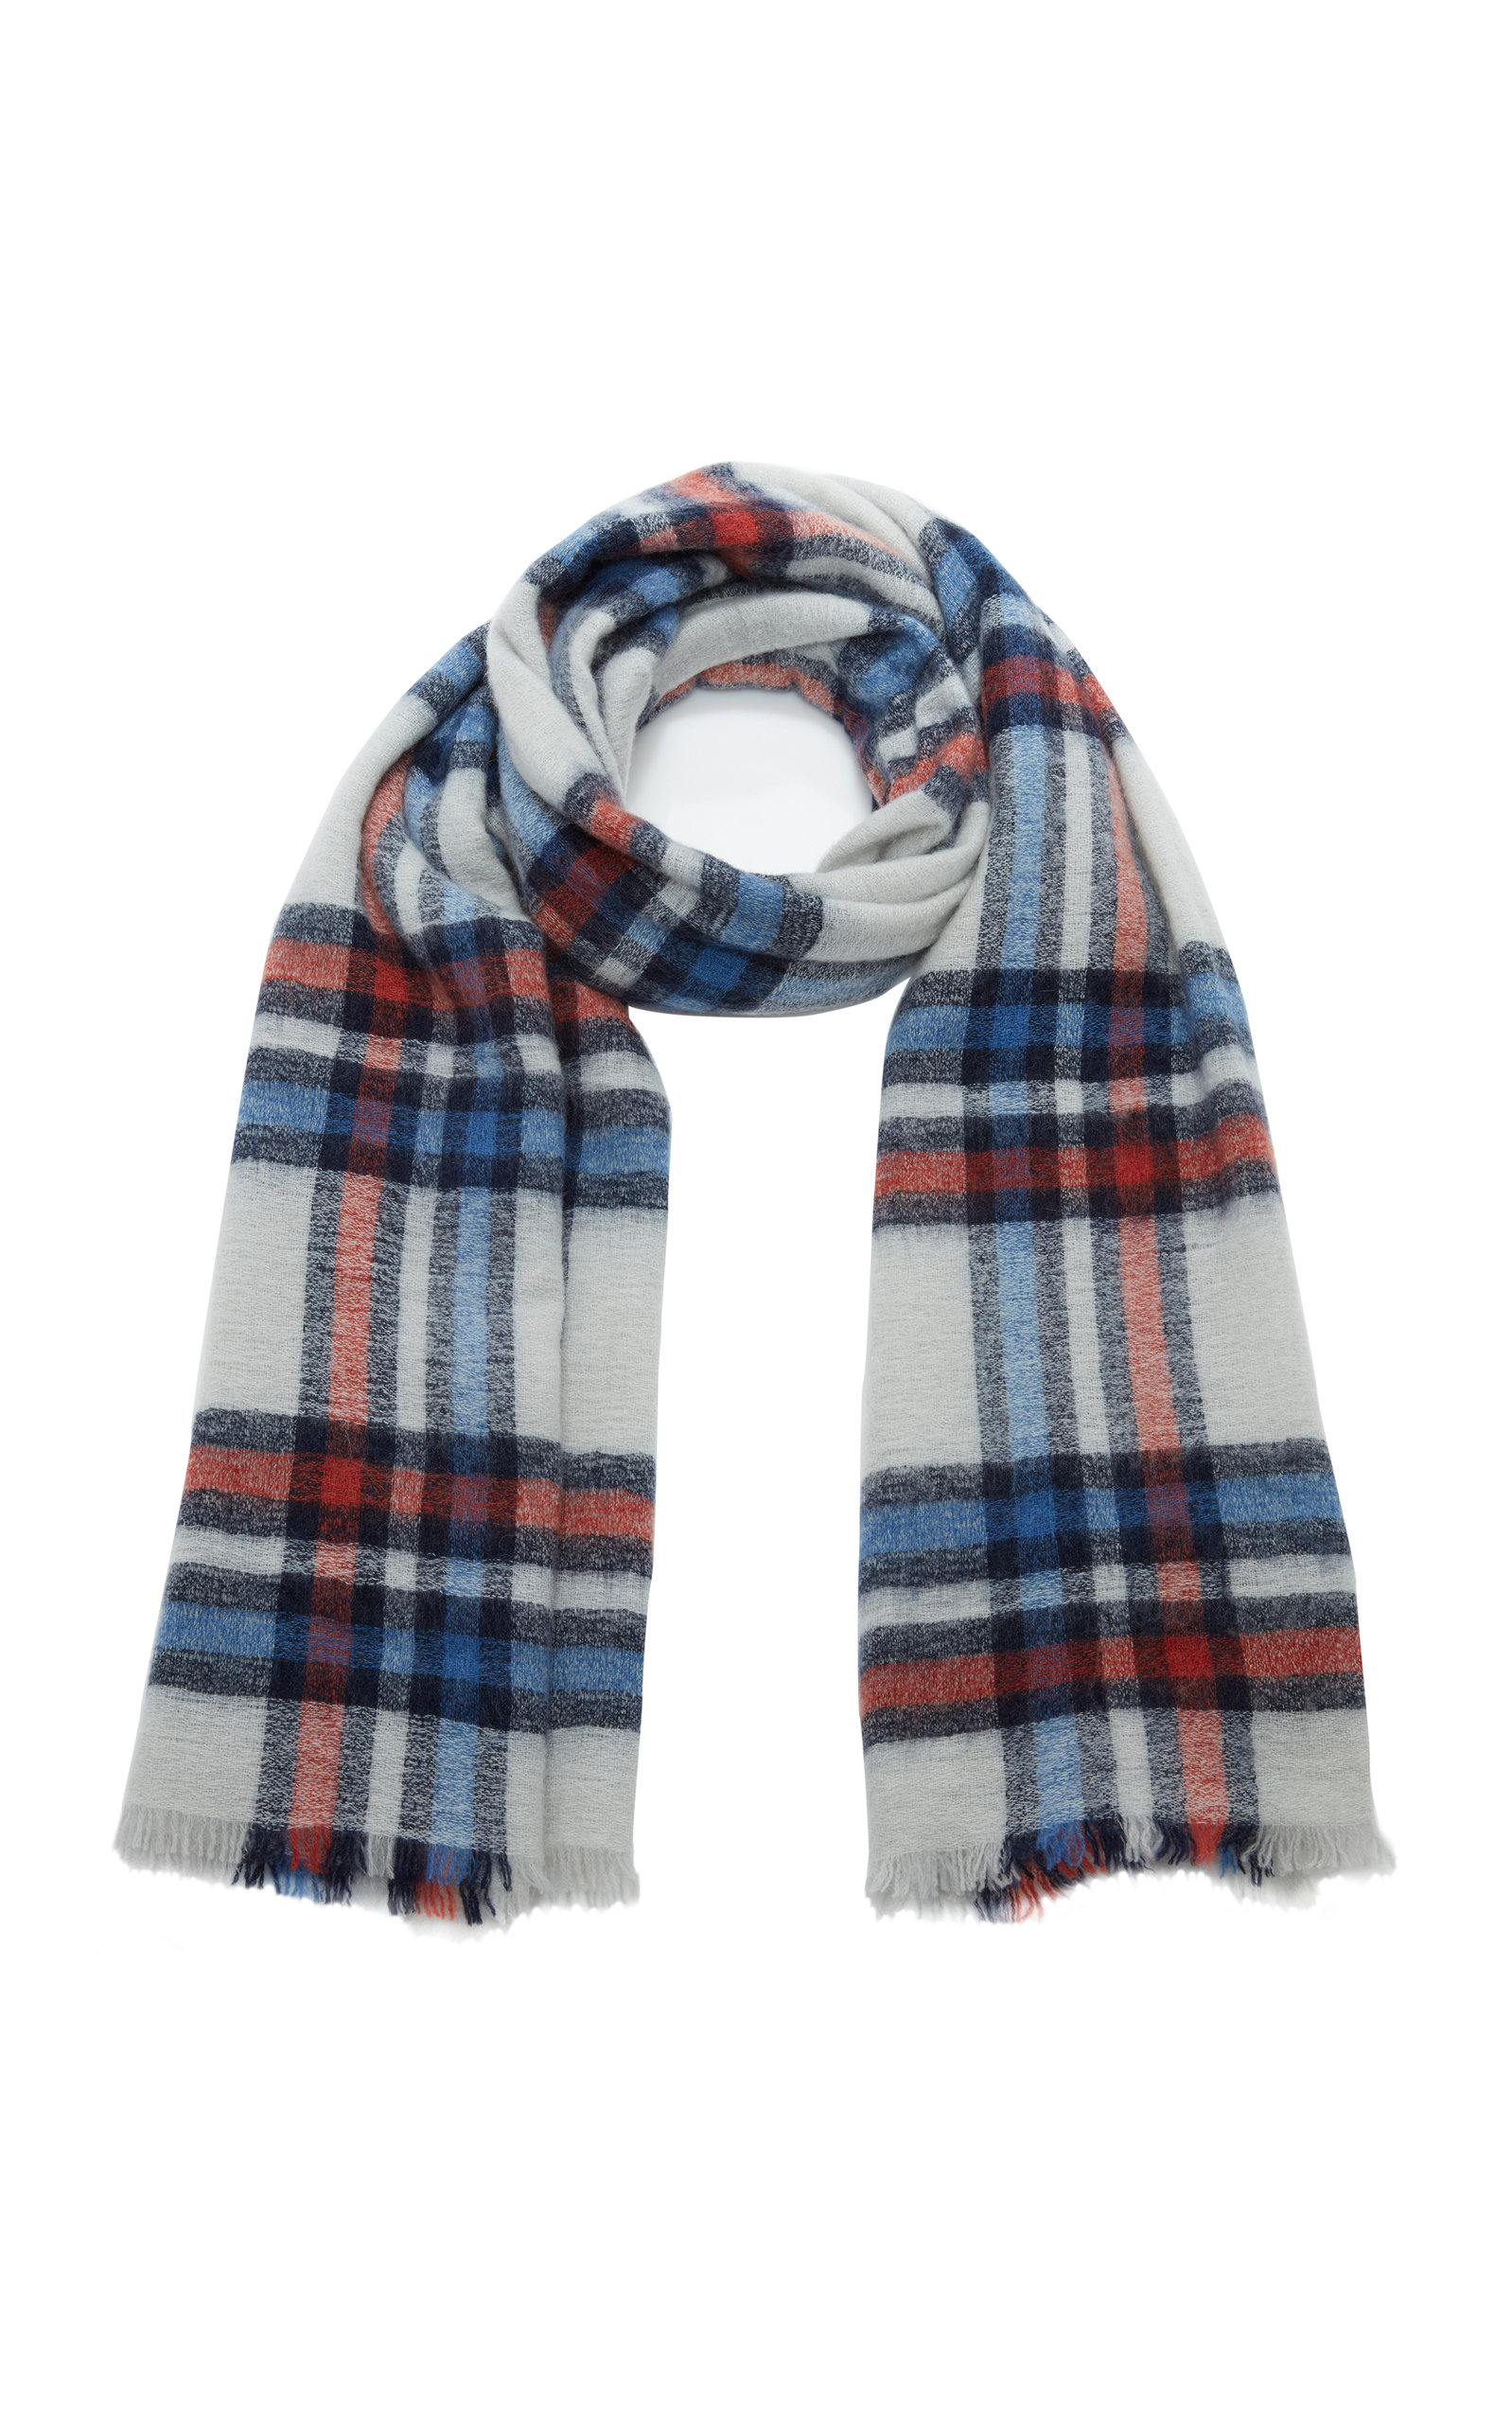 ISABEL MARANT | Isabel Marant Simona Plaid Wool And Cashmere-Blend Scarf | Goxip